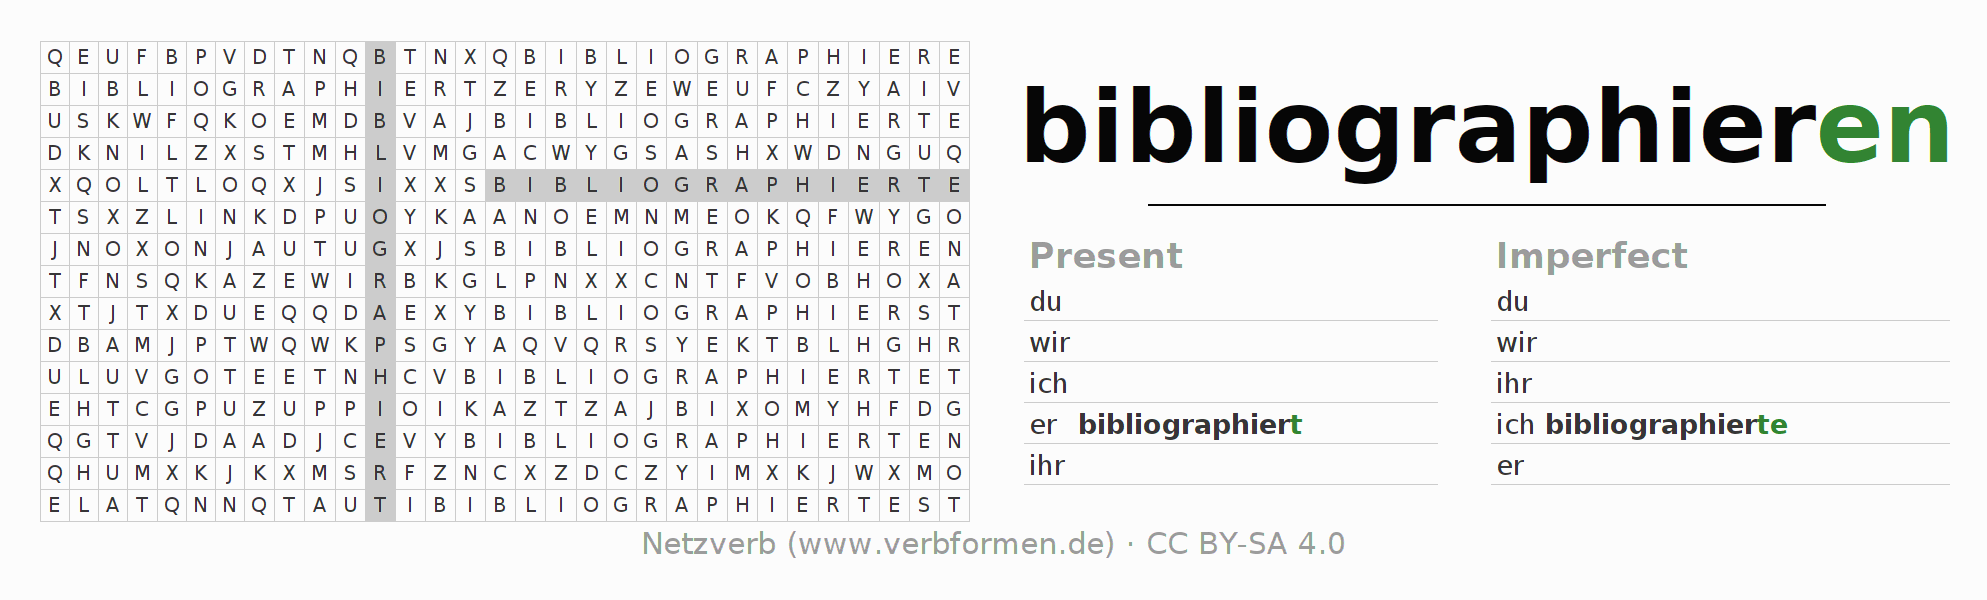 Word search puzzle for the conjugation of the verb bibliographieren